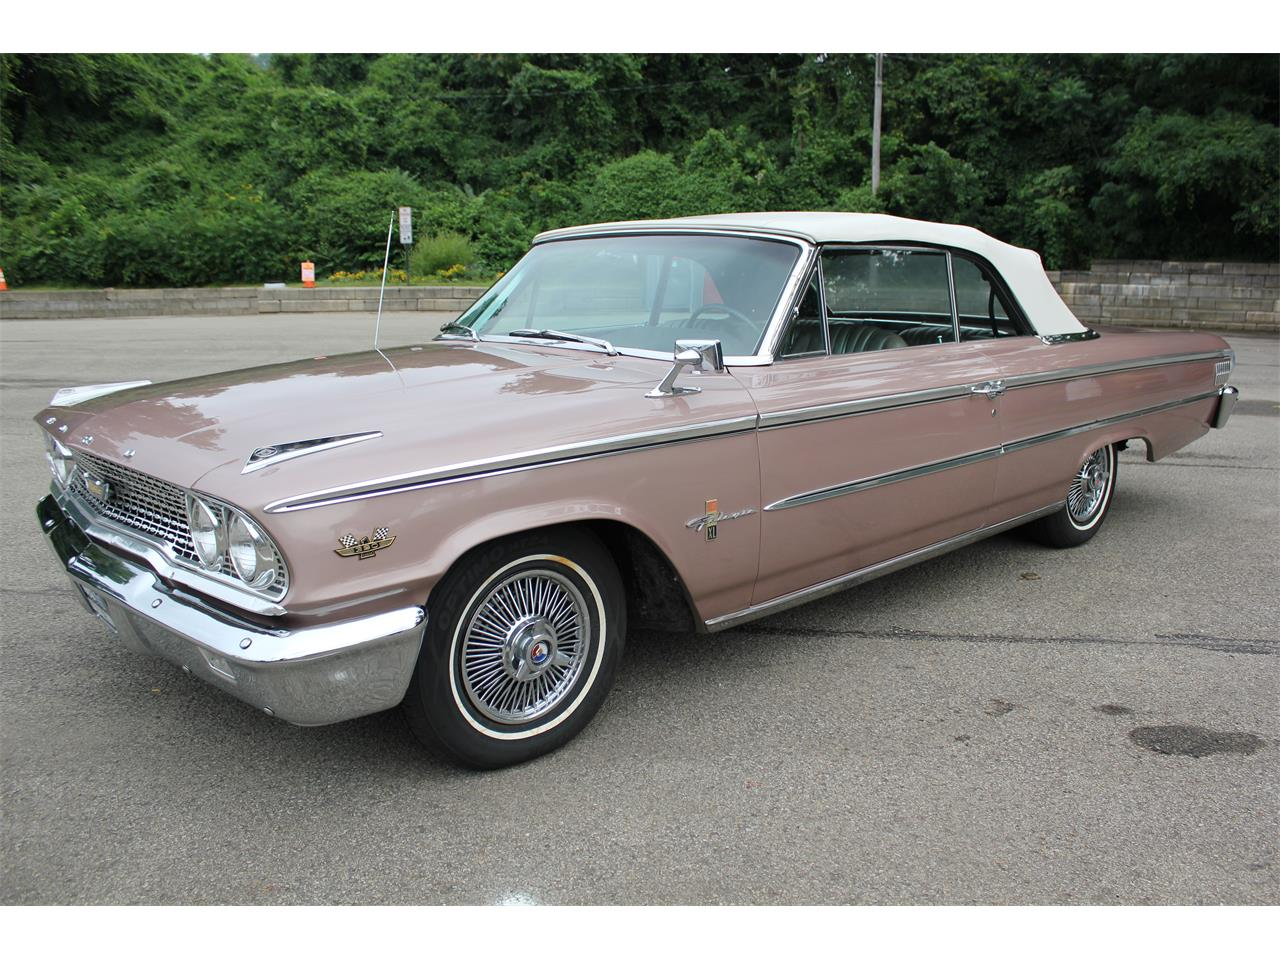 Large Picture of Classic 1963 Ford Galaxie 500 XL - $34,500.00 - ORPQ